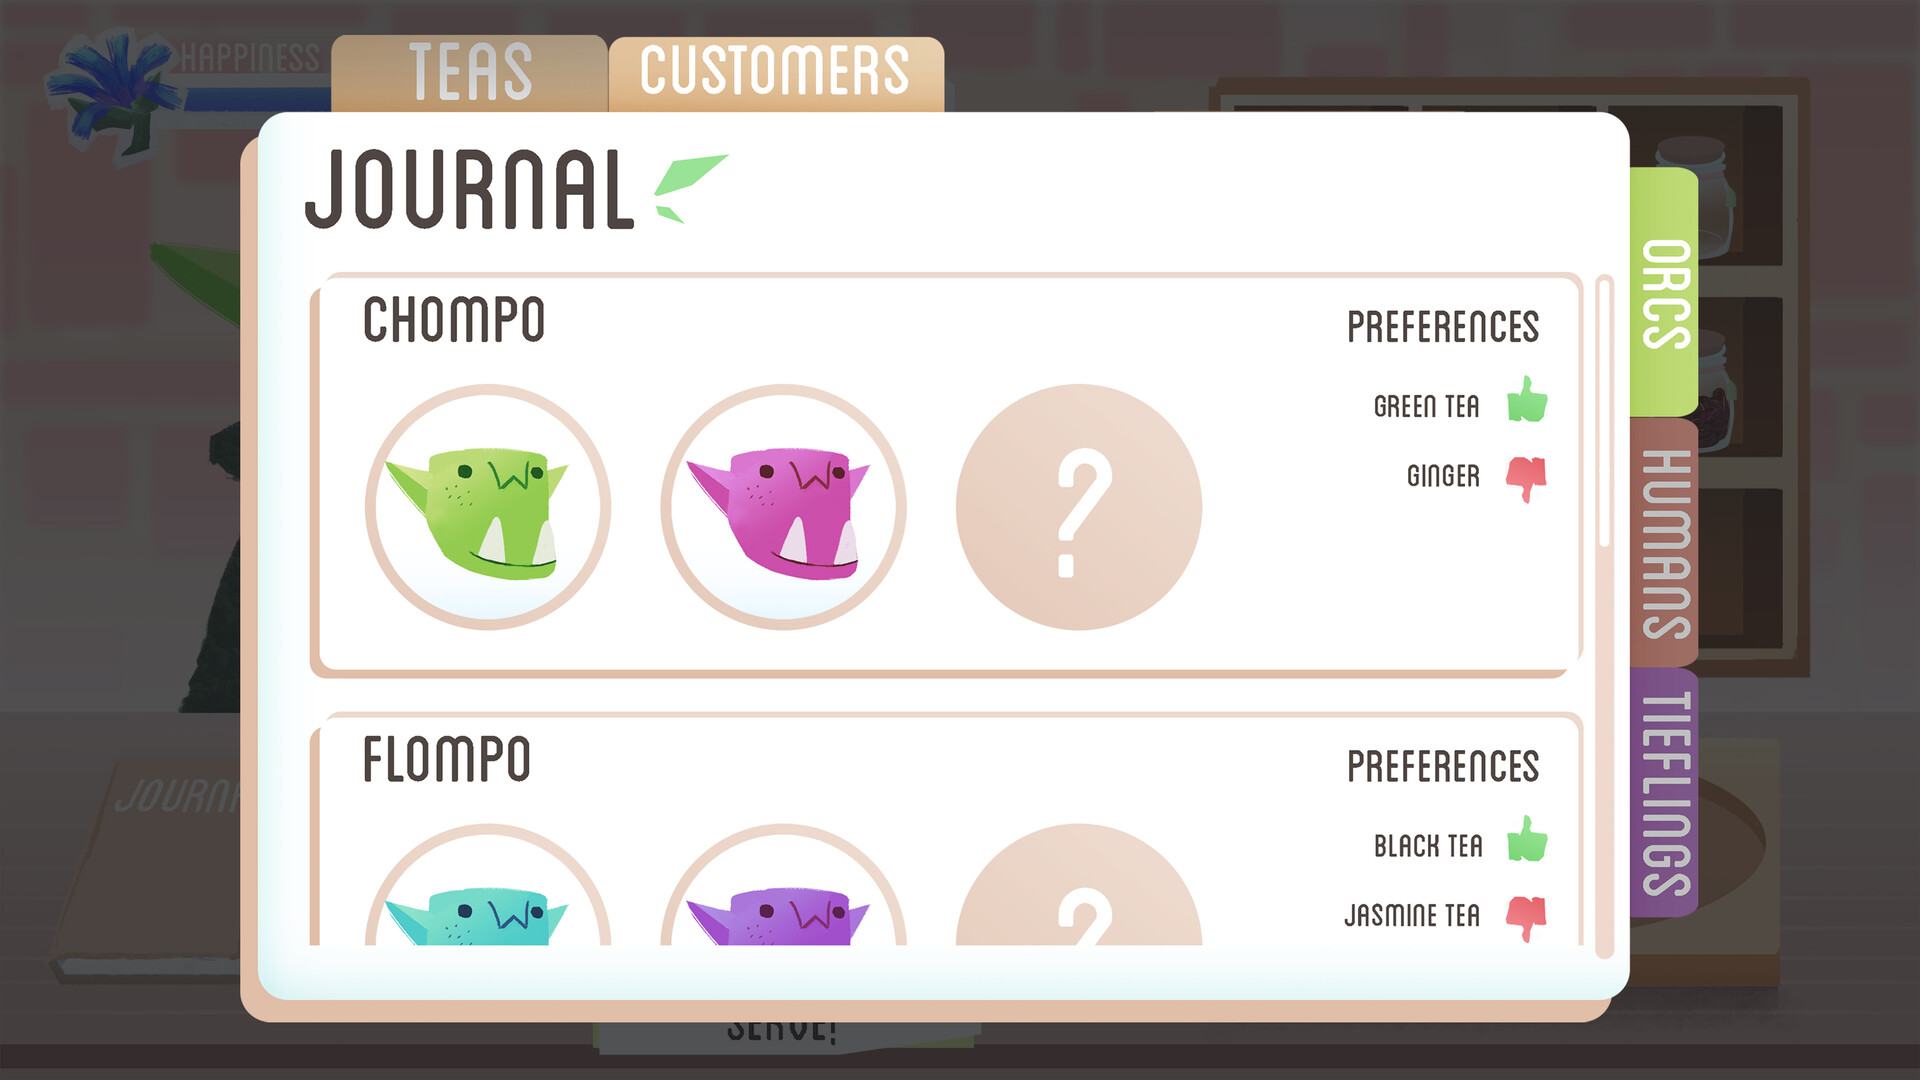 Customer tab has much more room per entry to show off the character portrait art. Otherwise, it continues the rounded aspect of the interface to reflect cuteness and friendliness.